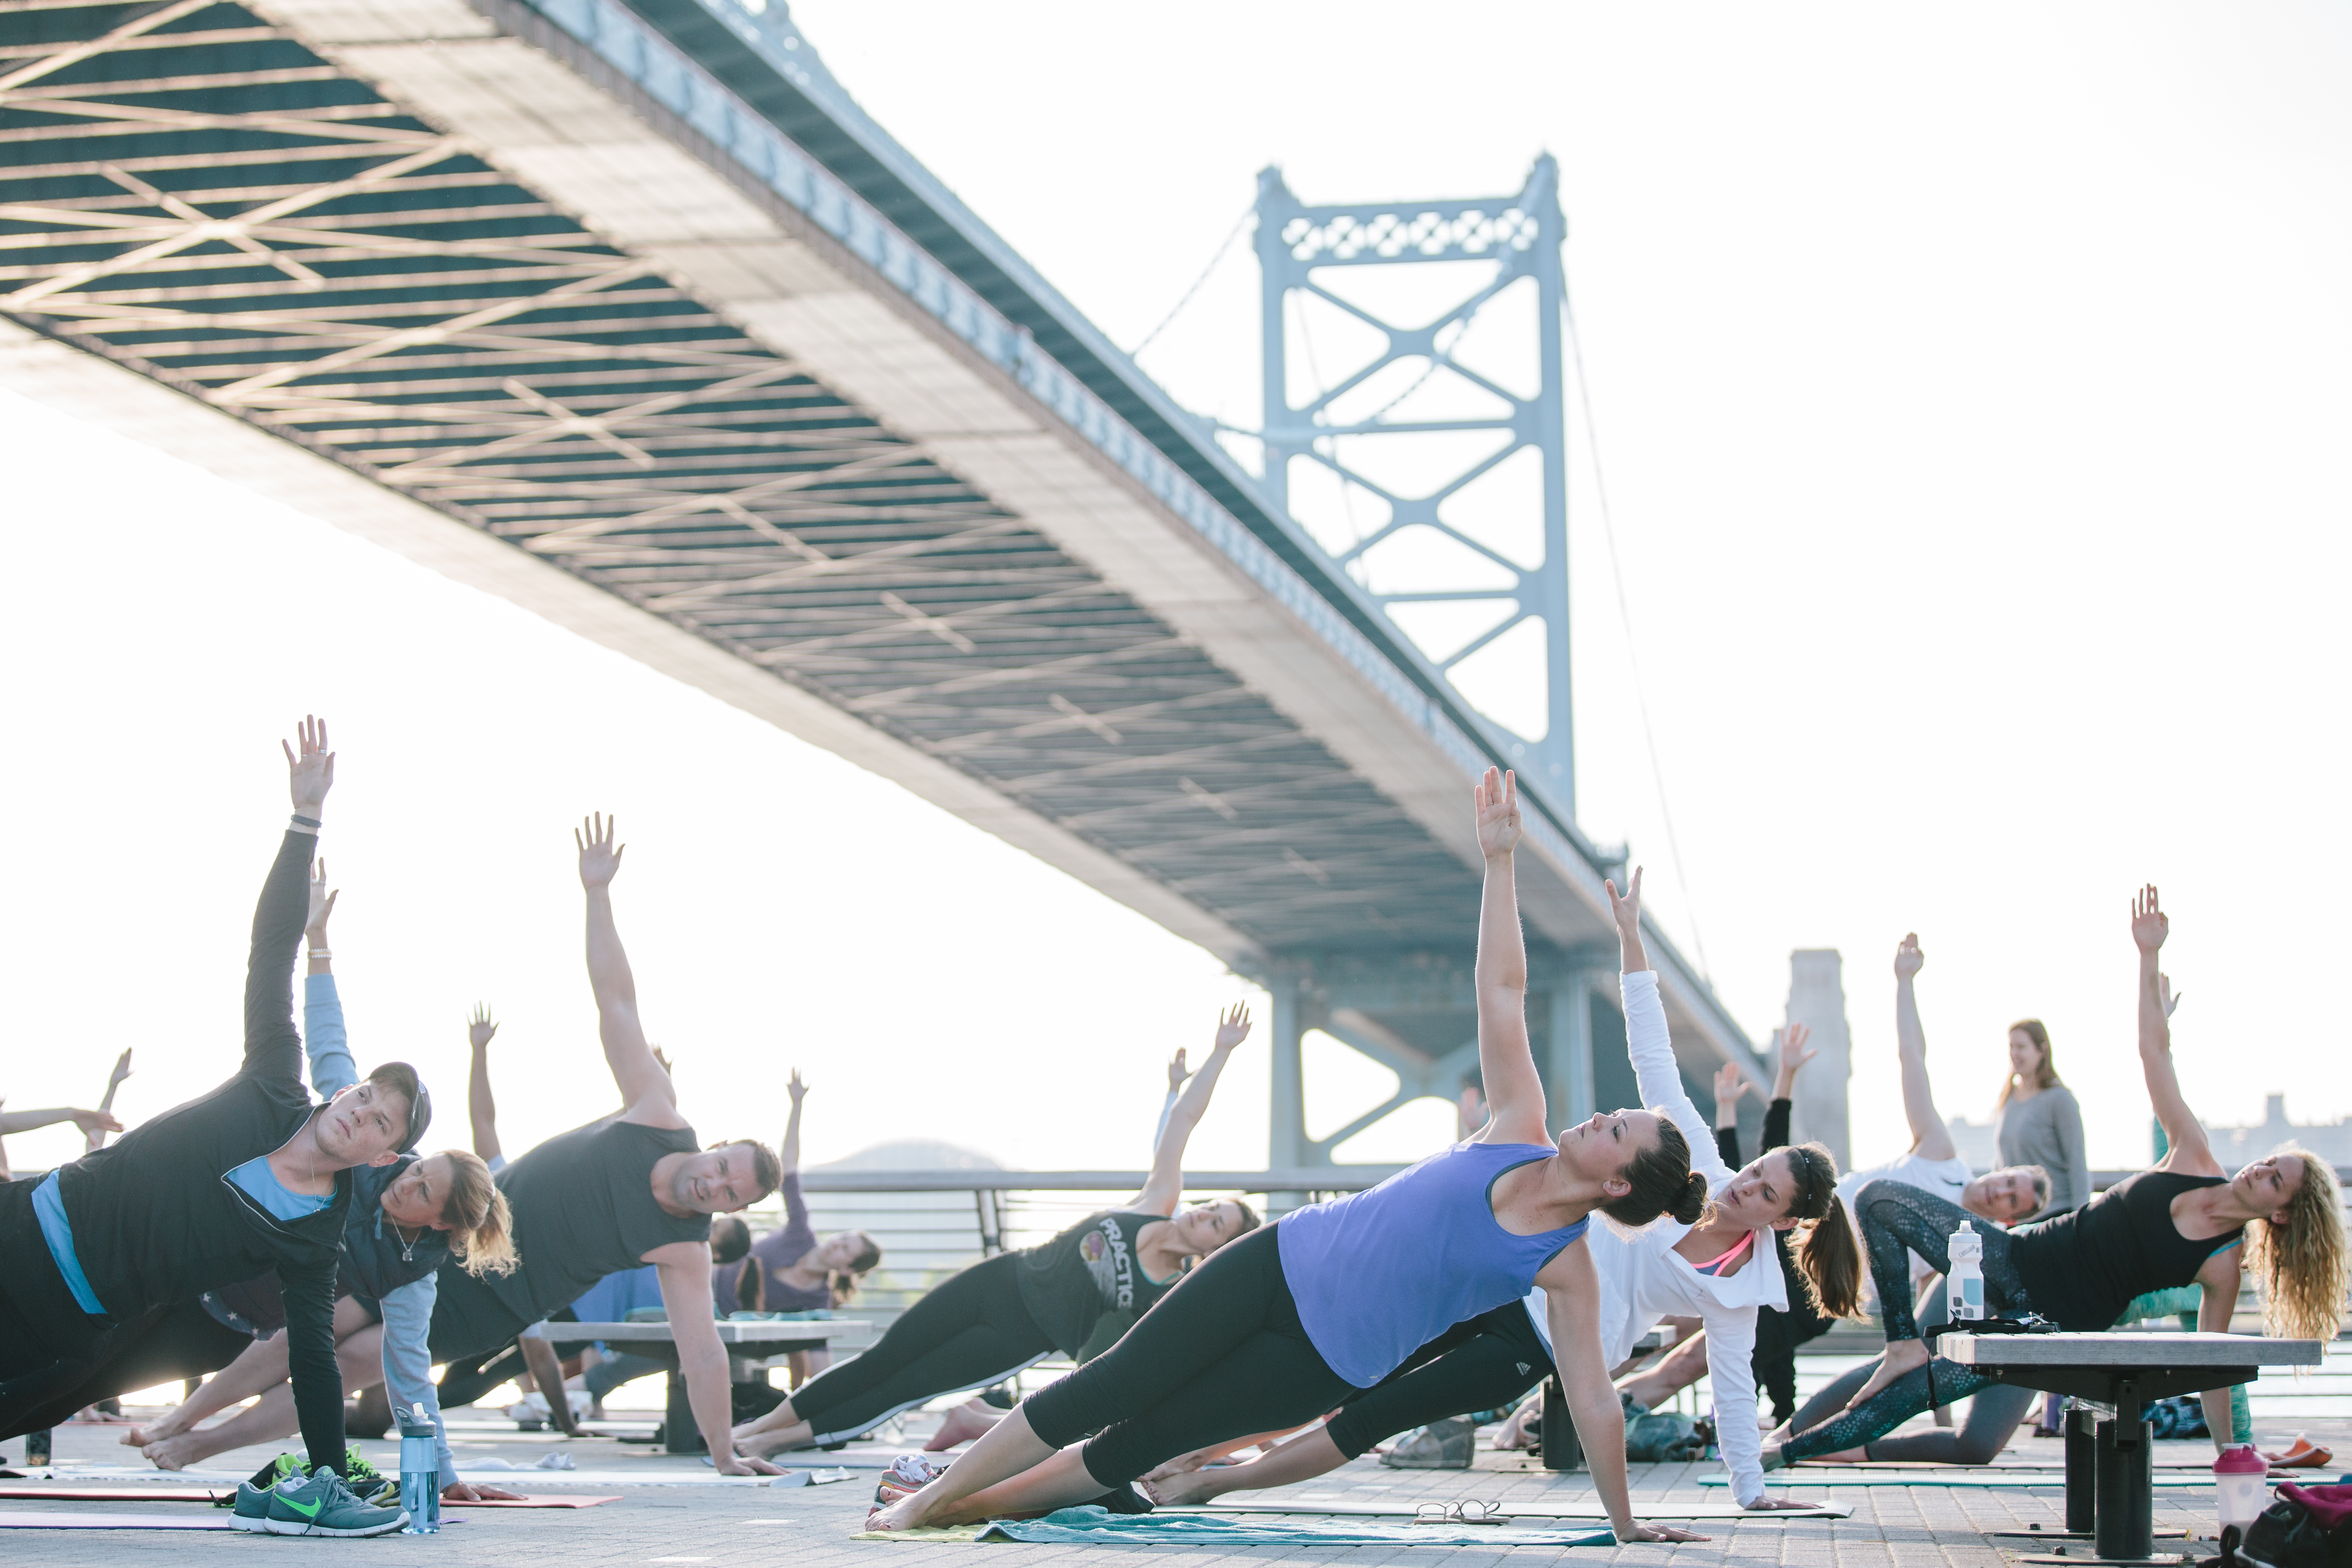 Yoga at Race Street Pier (Matt Stanley/DRWC)